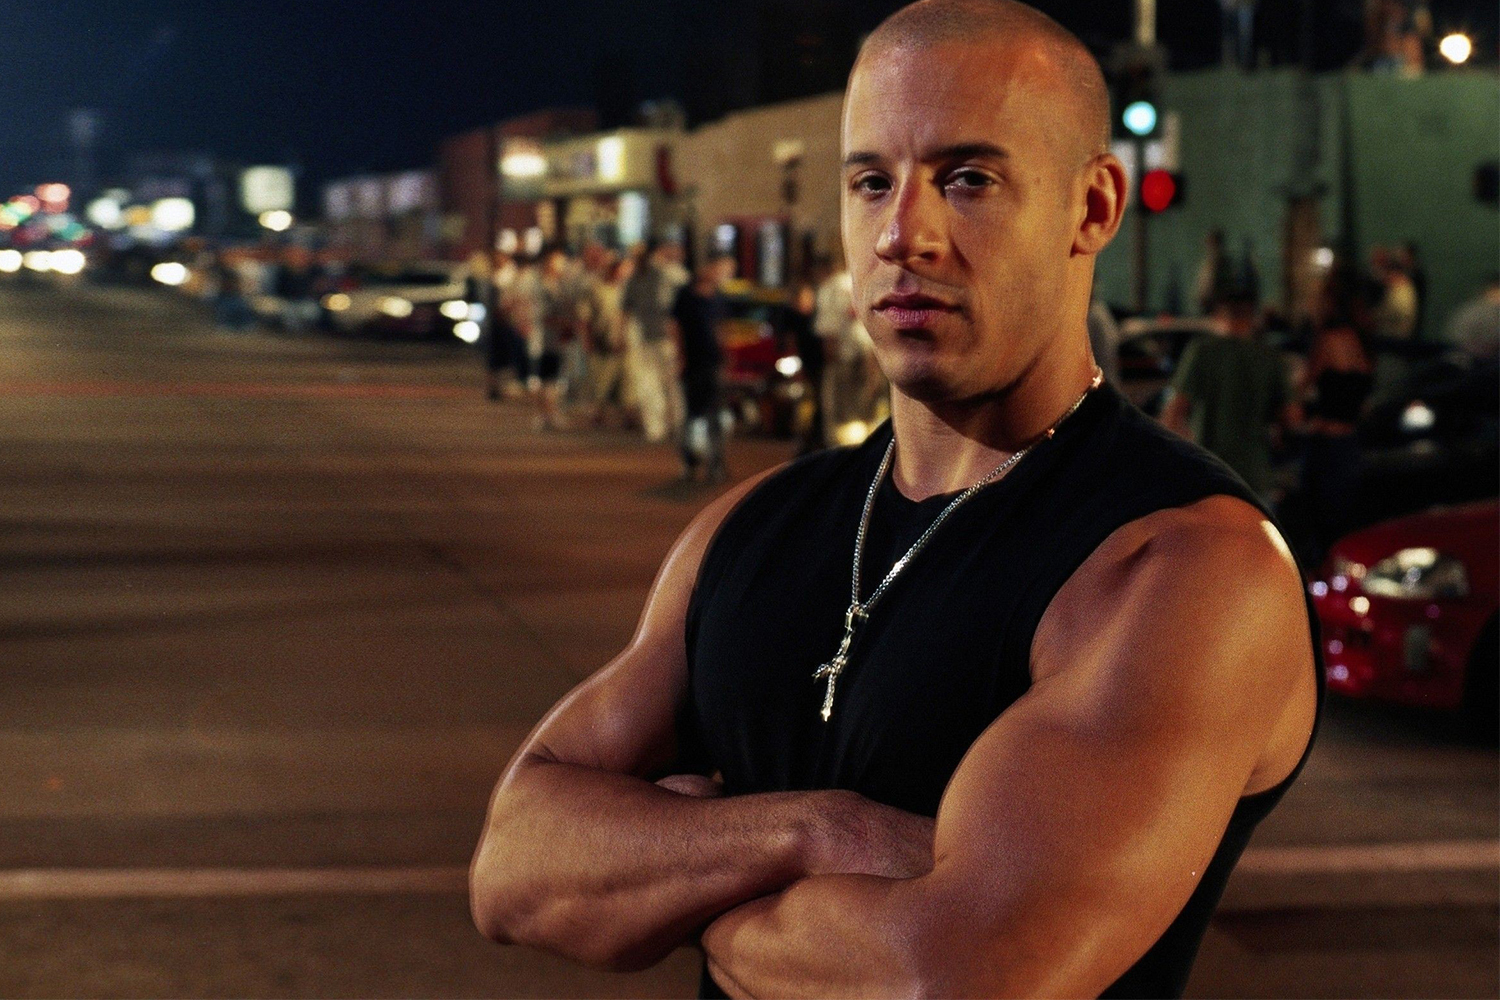 Vin Diesel Announces Release Dates for 'Fast & Furious' 8, 9 and 10